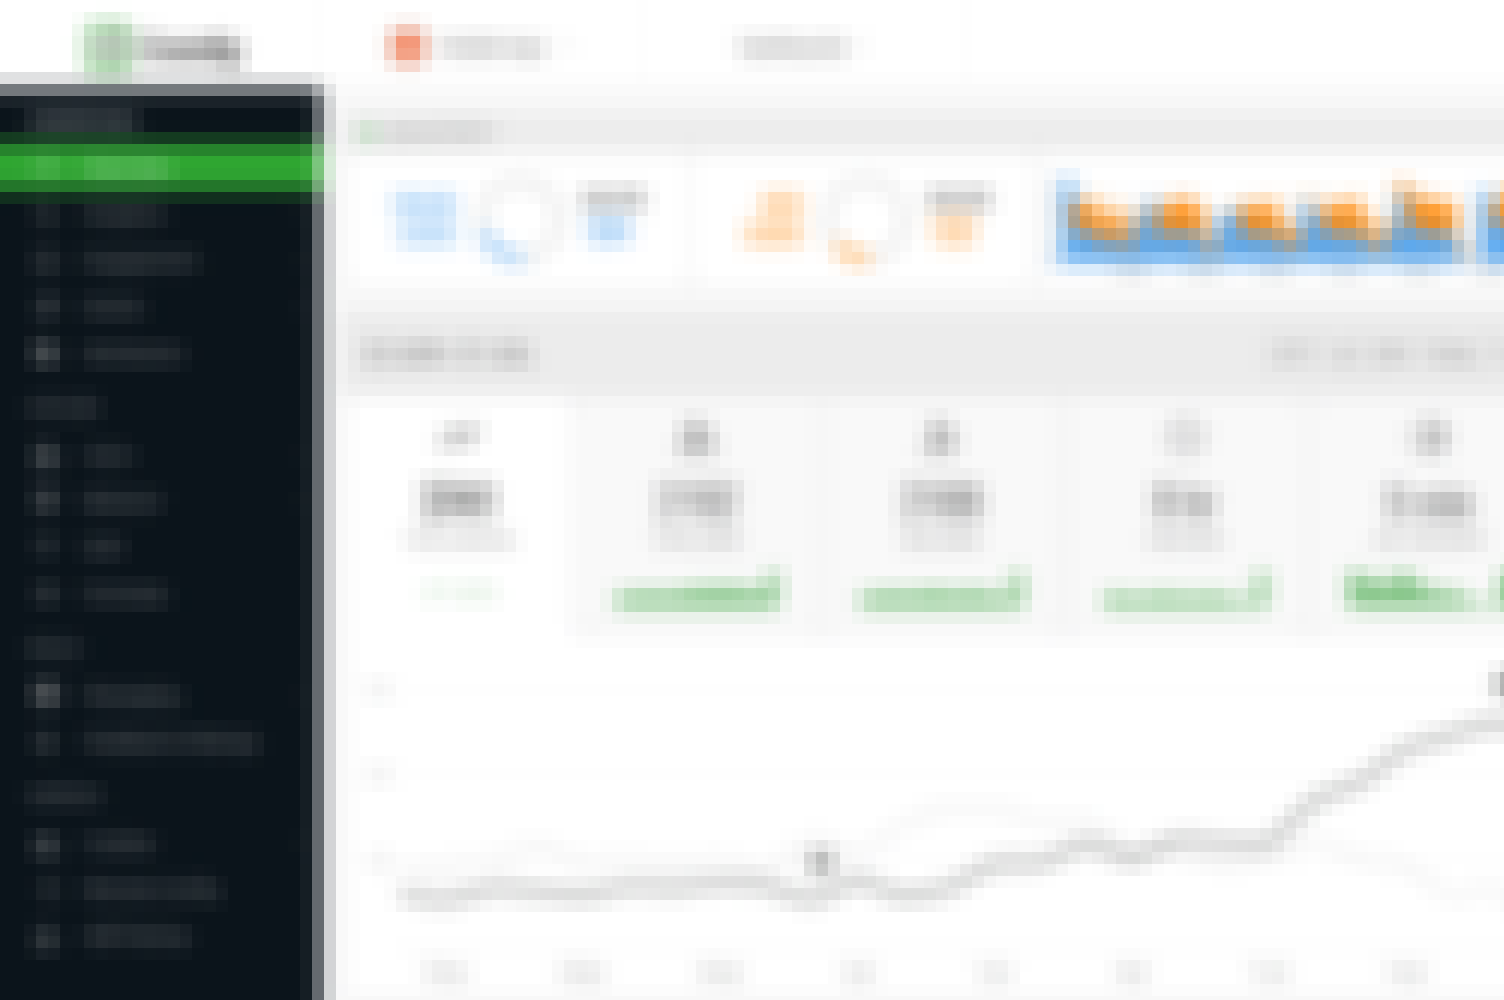 Countly mobile analytics dashboard